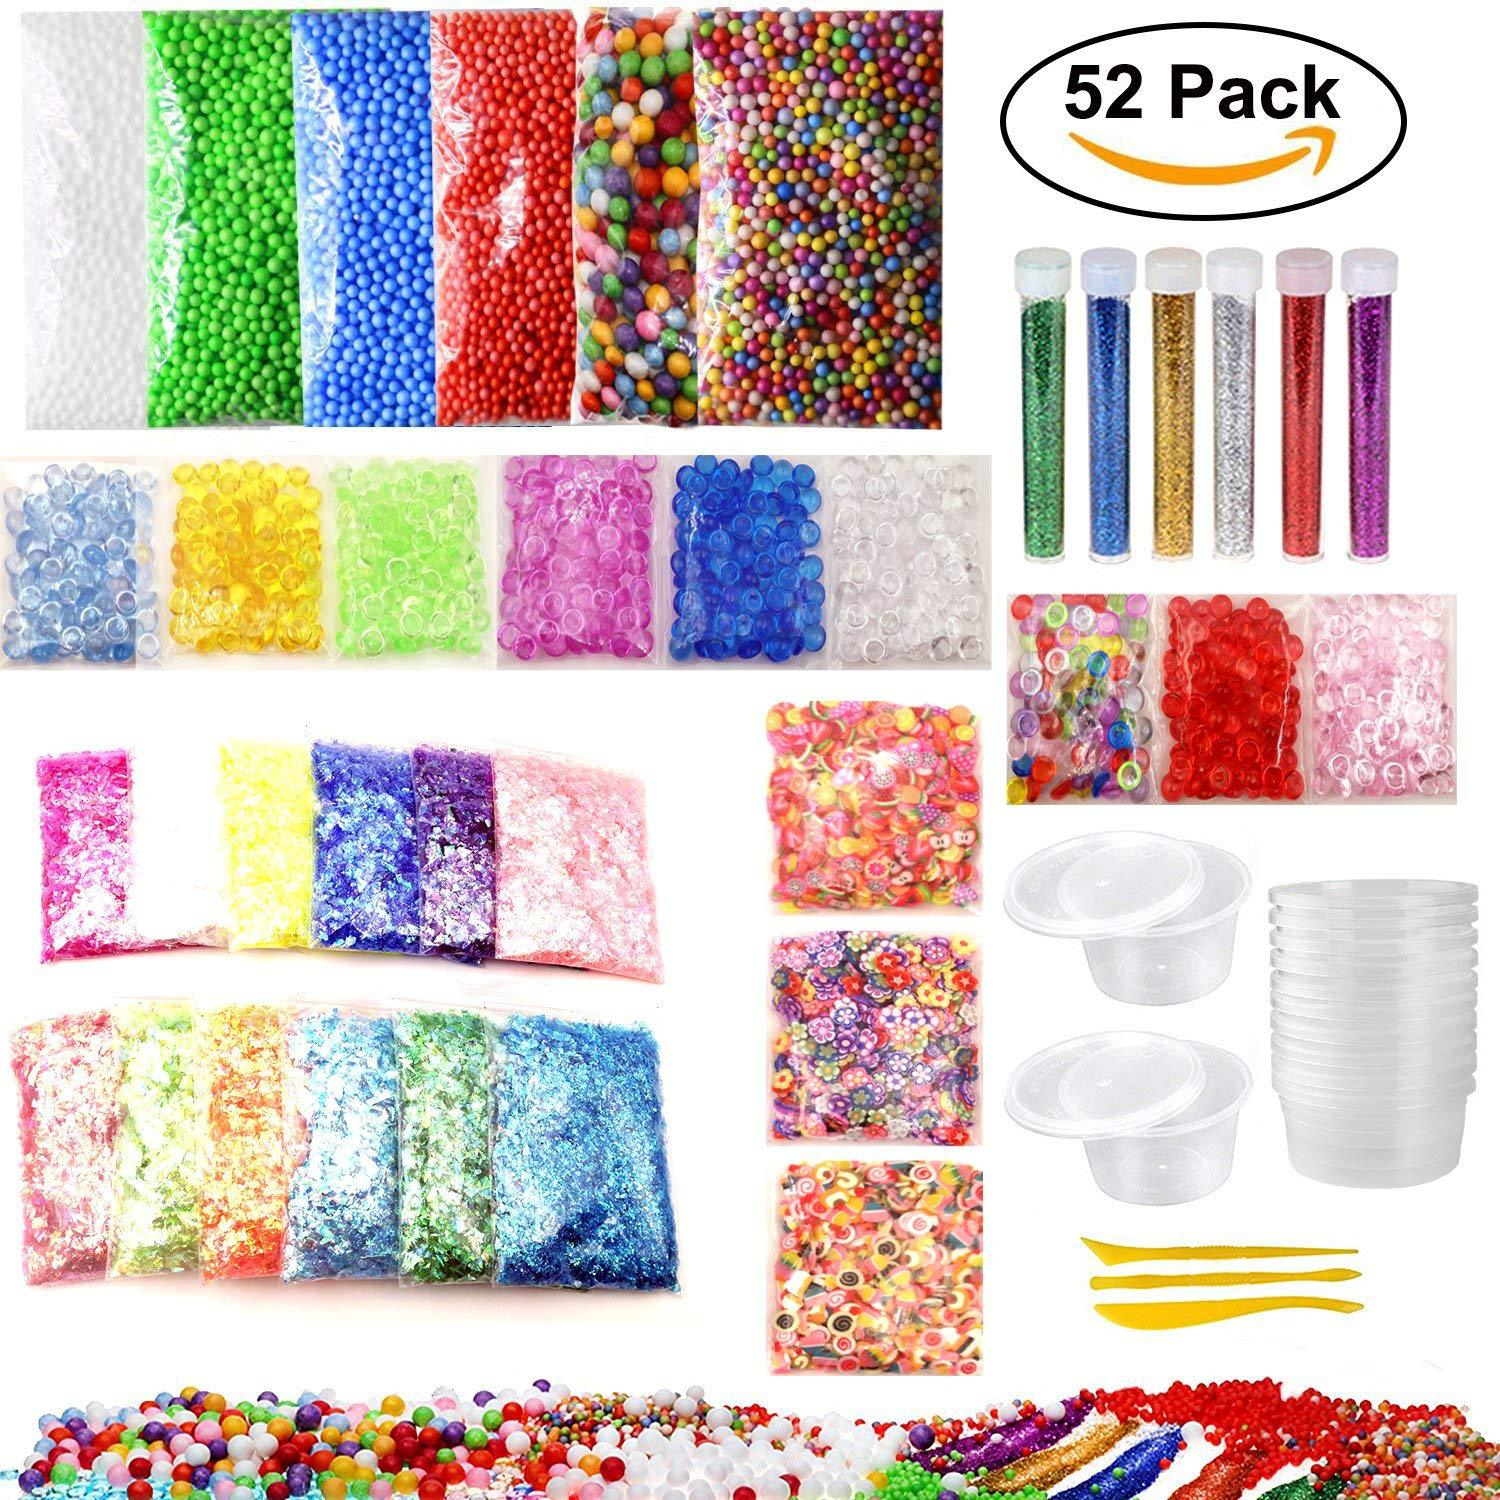 52 PCS Slime SET Making Kit Colorful Foam Ball Granules Flat Beads Gold Powder Candy Paper Polymer Clay Set Childrens DIY TOY